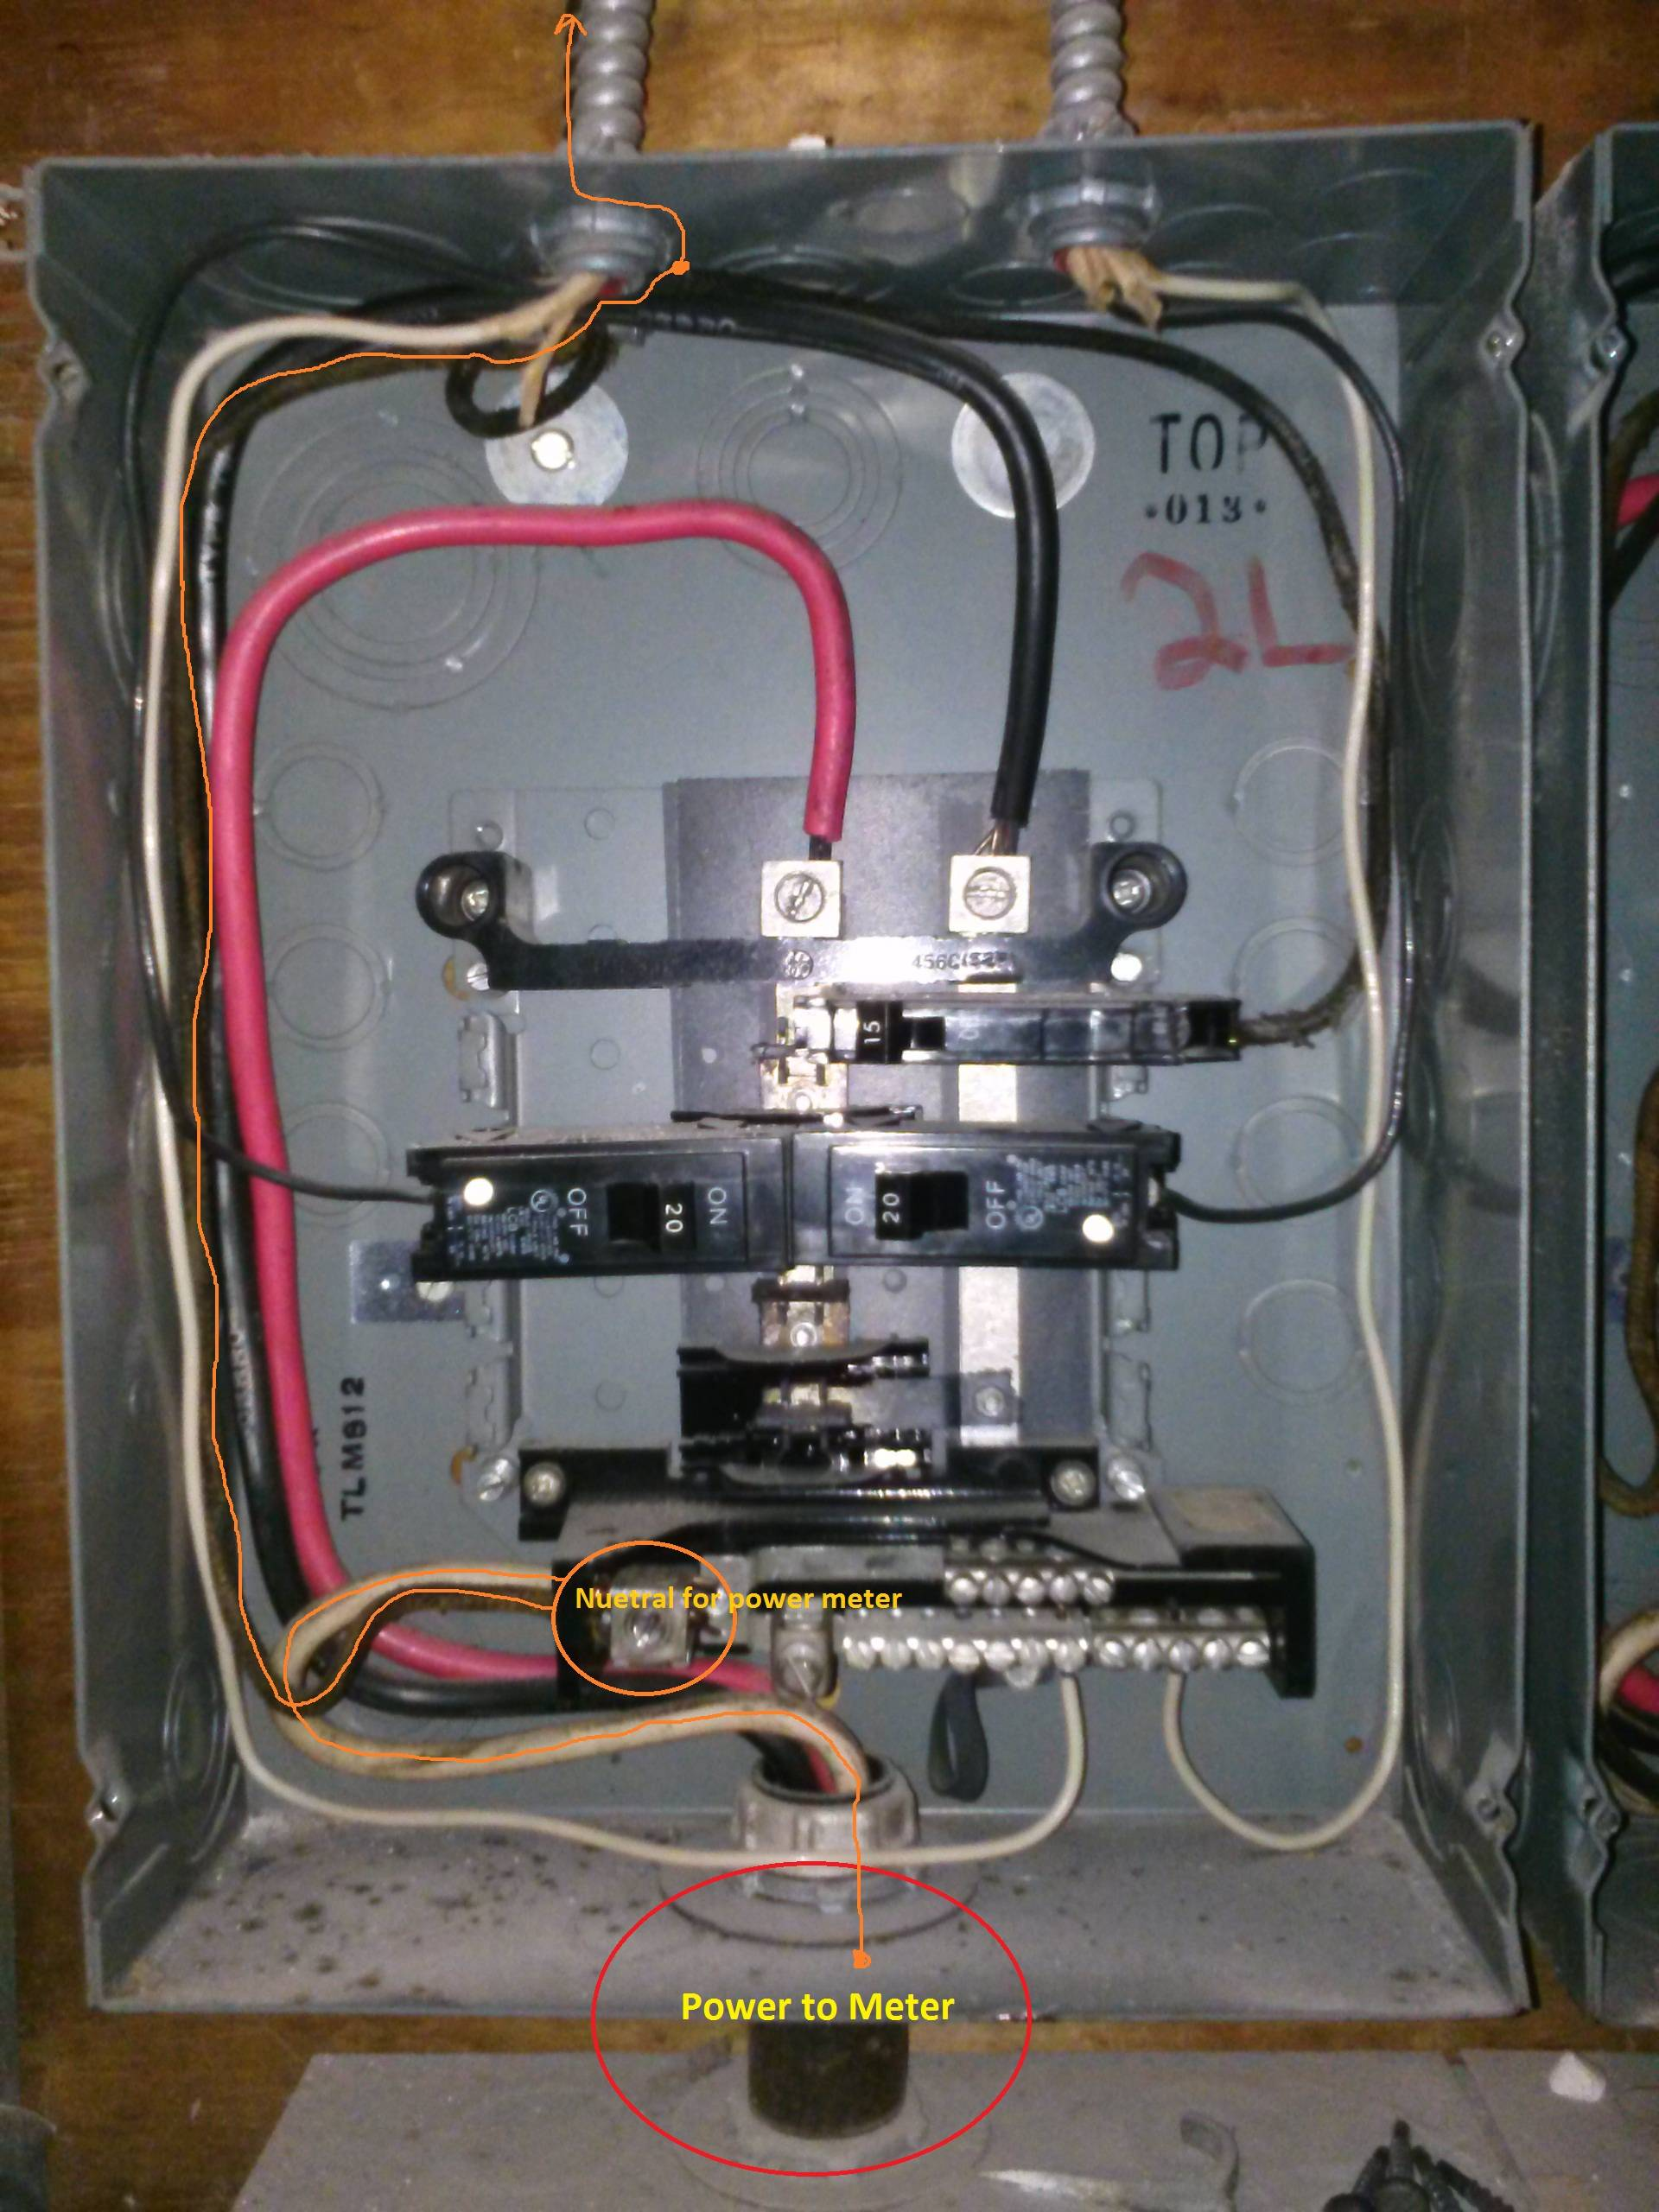 hight resolution of electrical should a neutral wire ever be connected to the neutral meter box wiring meter box wiring